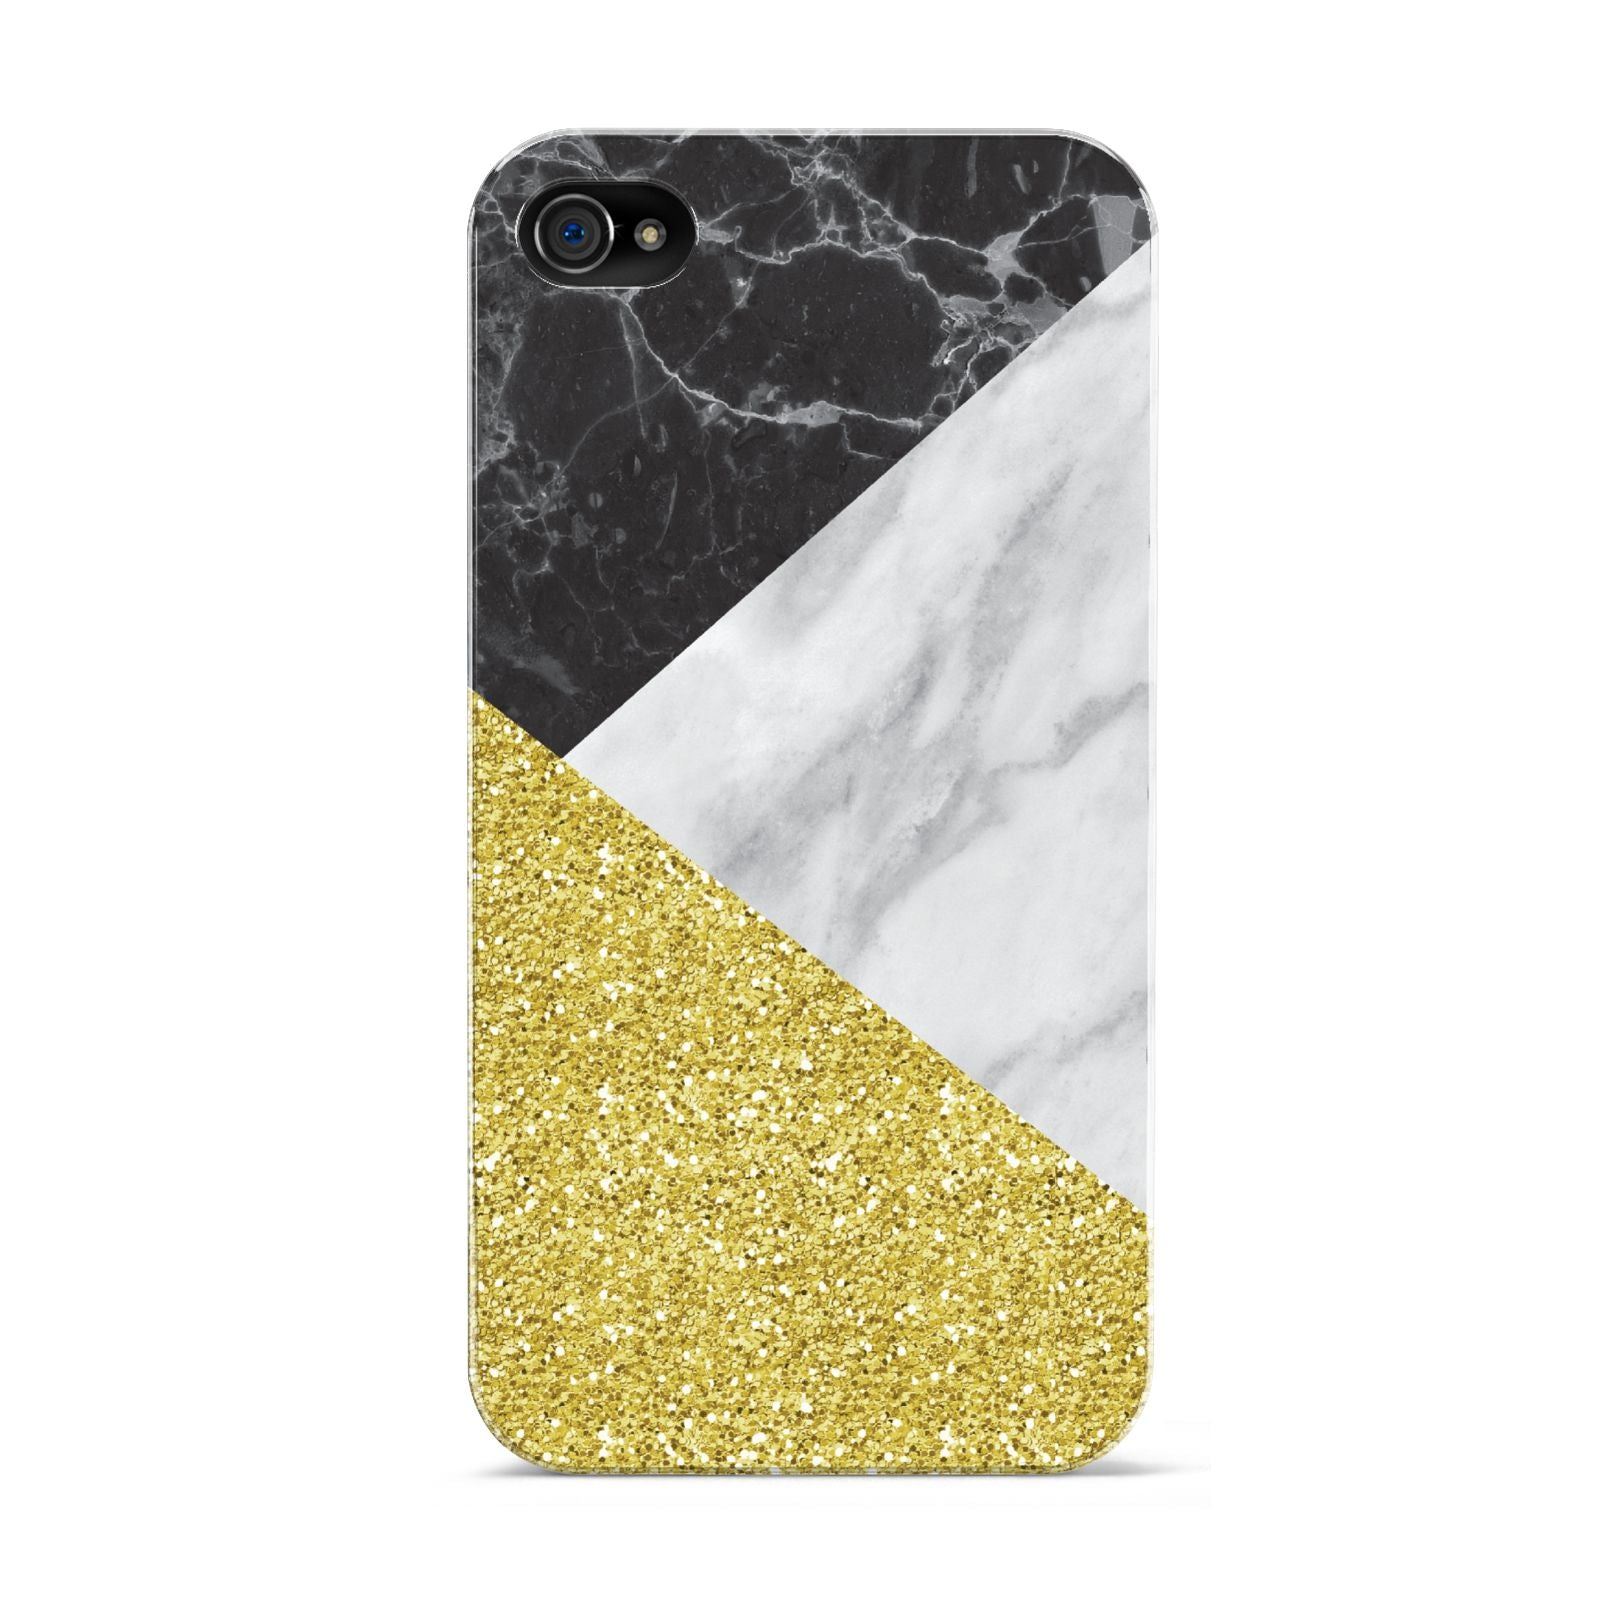 Marble Black Gold Apple iPhone 4s Case